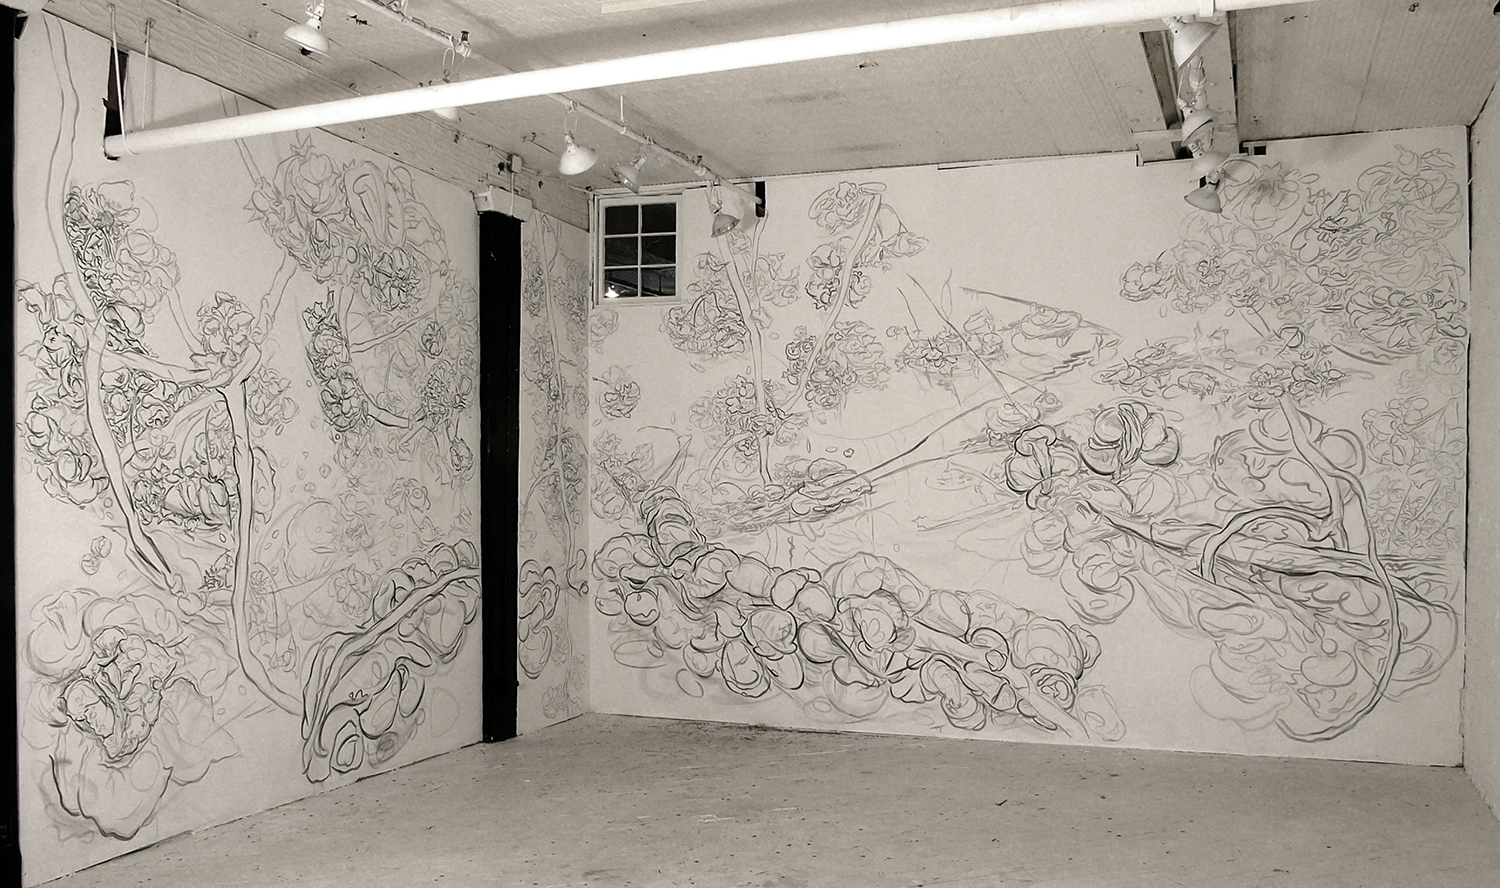 Spring Festival: Ice Bridge with Blossoms, 2007,pencil and acrylic on wall, Emergency Arts, New York, NY